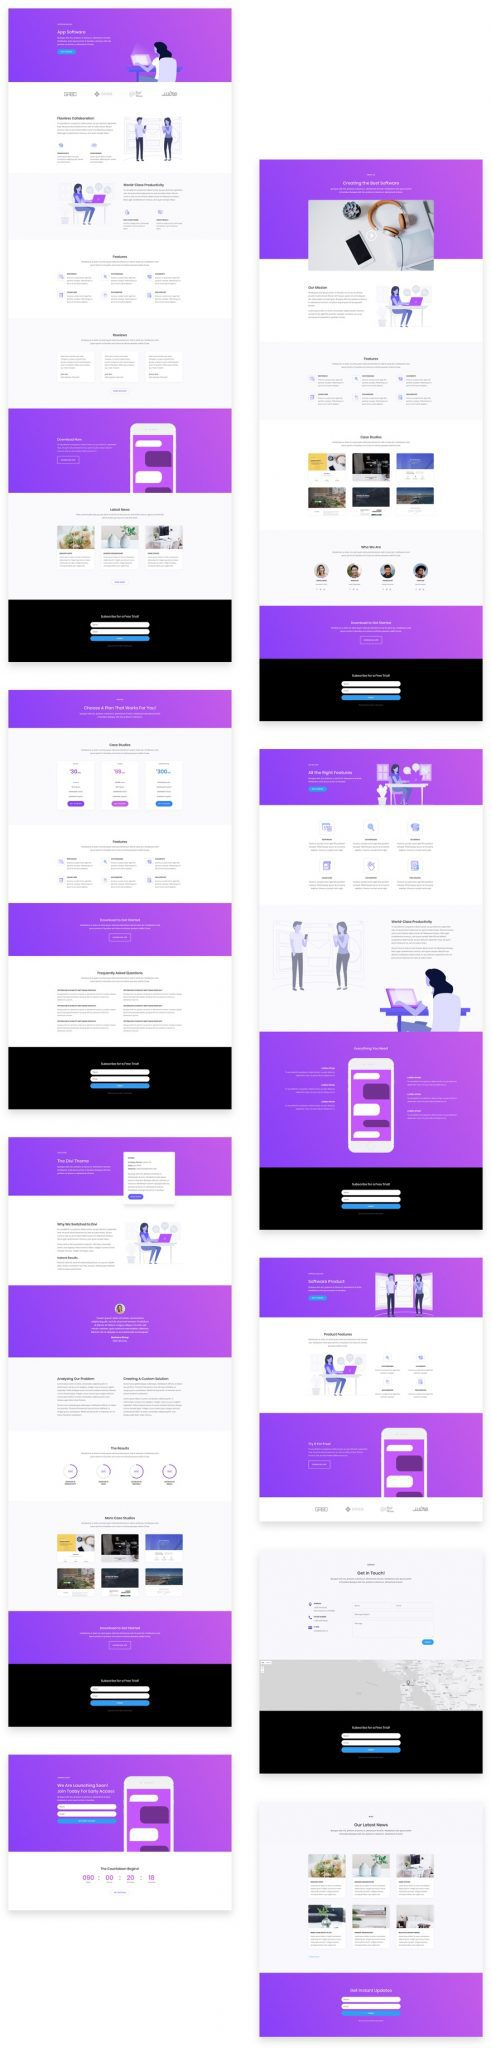 Software Marketing Divi Layout Pack